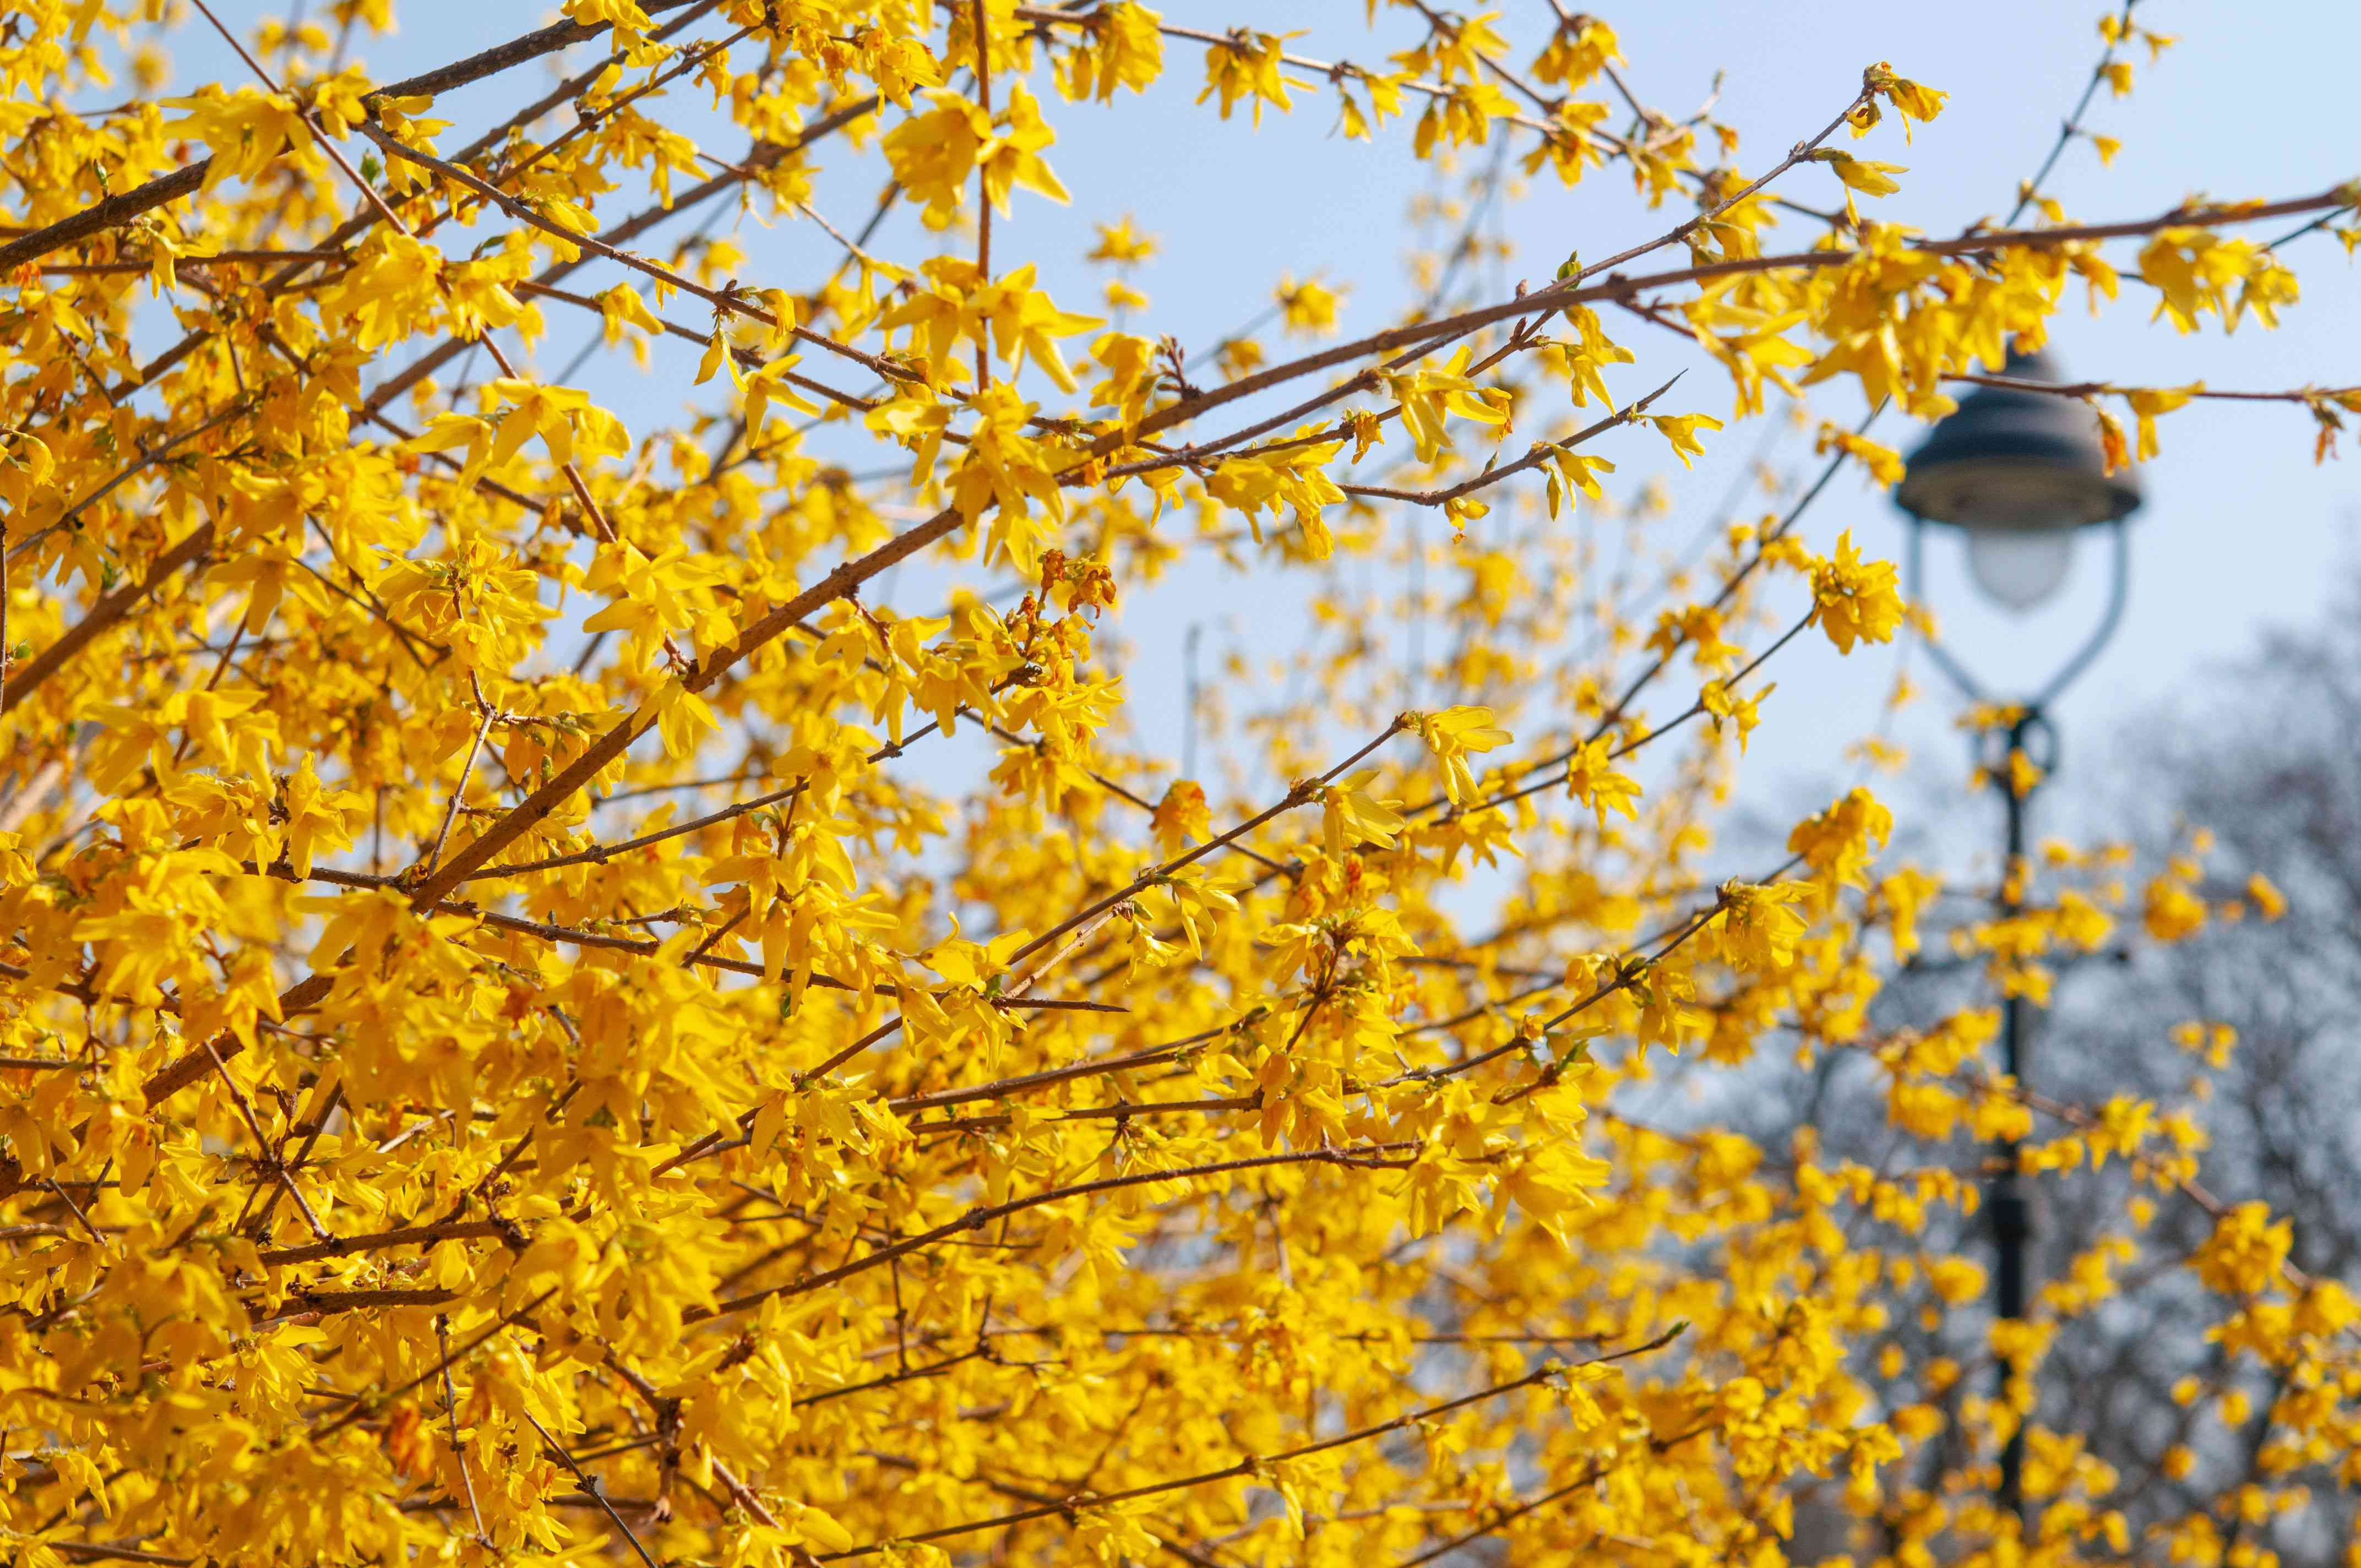 Forsythia bush with long arching branches with small yellow flowers in front of lamp post